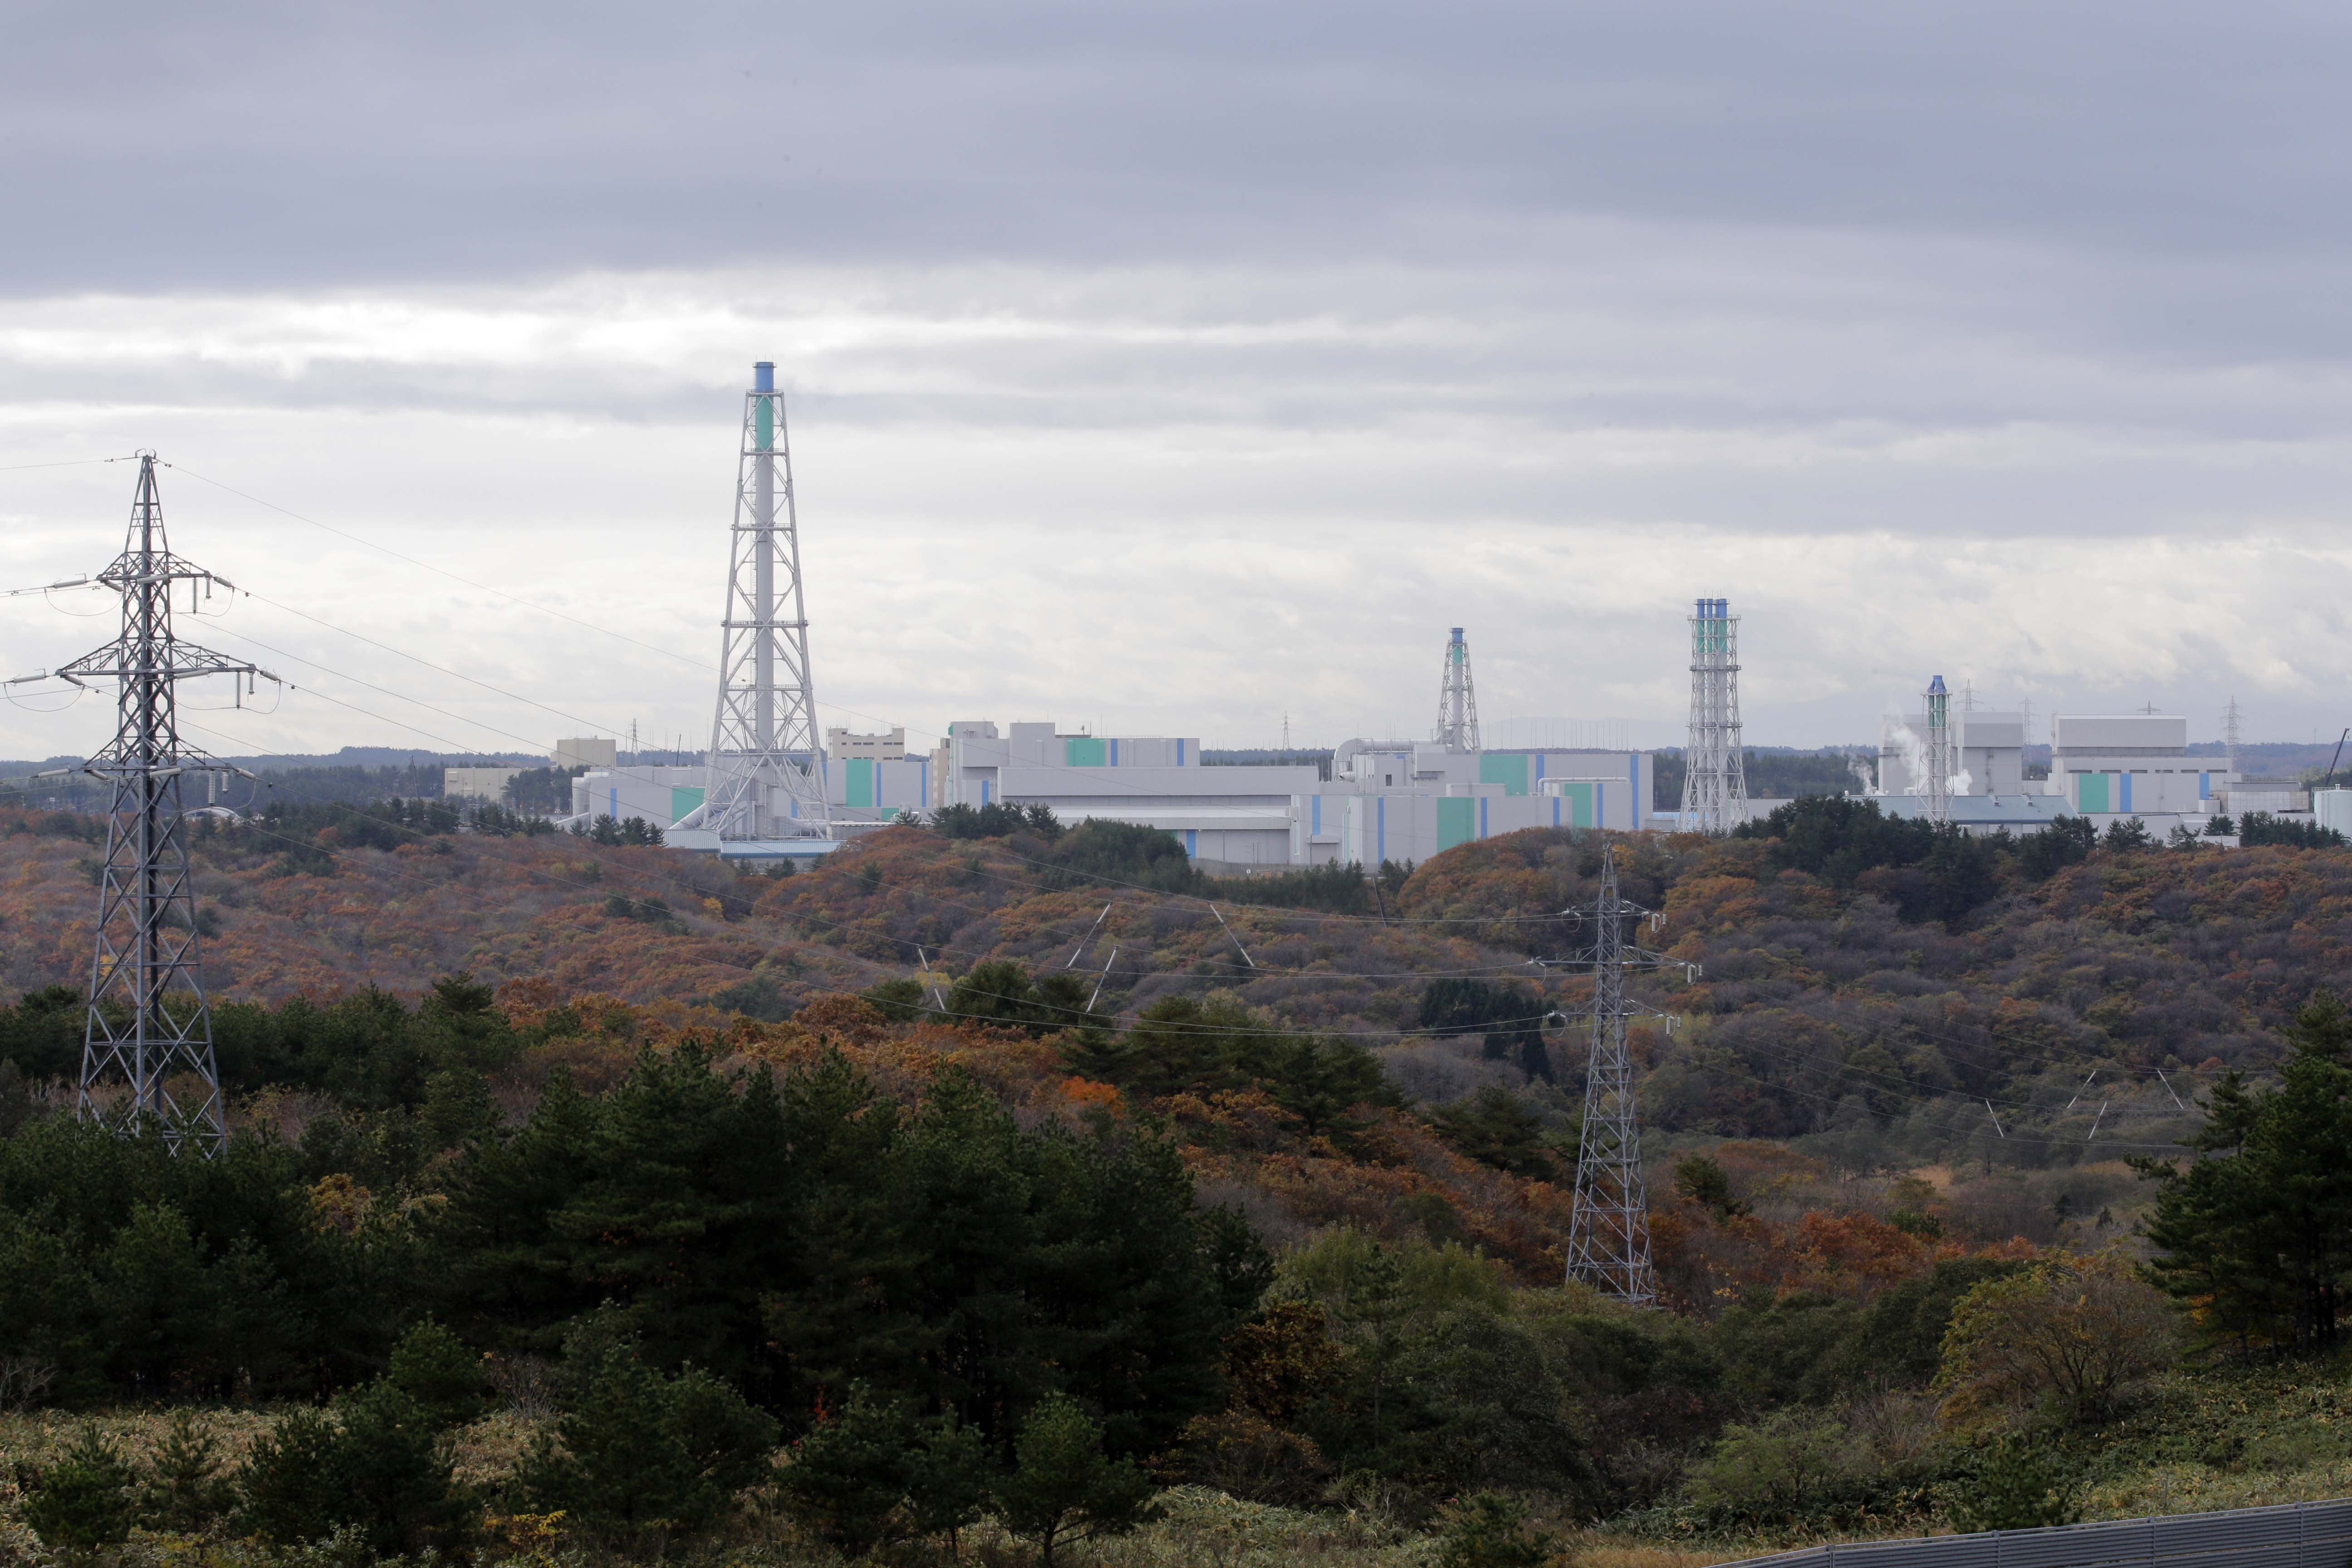 """In this Nov. 8, 2012 photo, the Rokkasho spent nuclear fuel reprocessing plant facilities, run by Japan Nuclear Fuel Ltd., stand in Rokkasho village in Aomori Prefecture, northern Japan. By hosting a high-tech facility that would convert spent fuel into a plutonium-uranium mix designed for the next generation of reactors, Rokkasho was supposed to provide fuel while minimizing nuclear waste storage problems. Those ambitions are falling apart because years of attempts to build a """"fast breeder"""" reactor, which would use the reprocessed fuel, appear to be ending in failure. (AP Photo/Koji Sasahara)"""